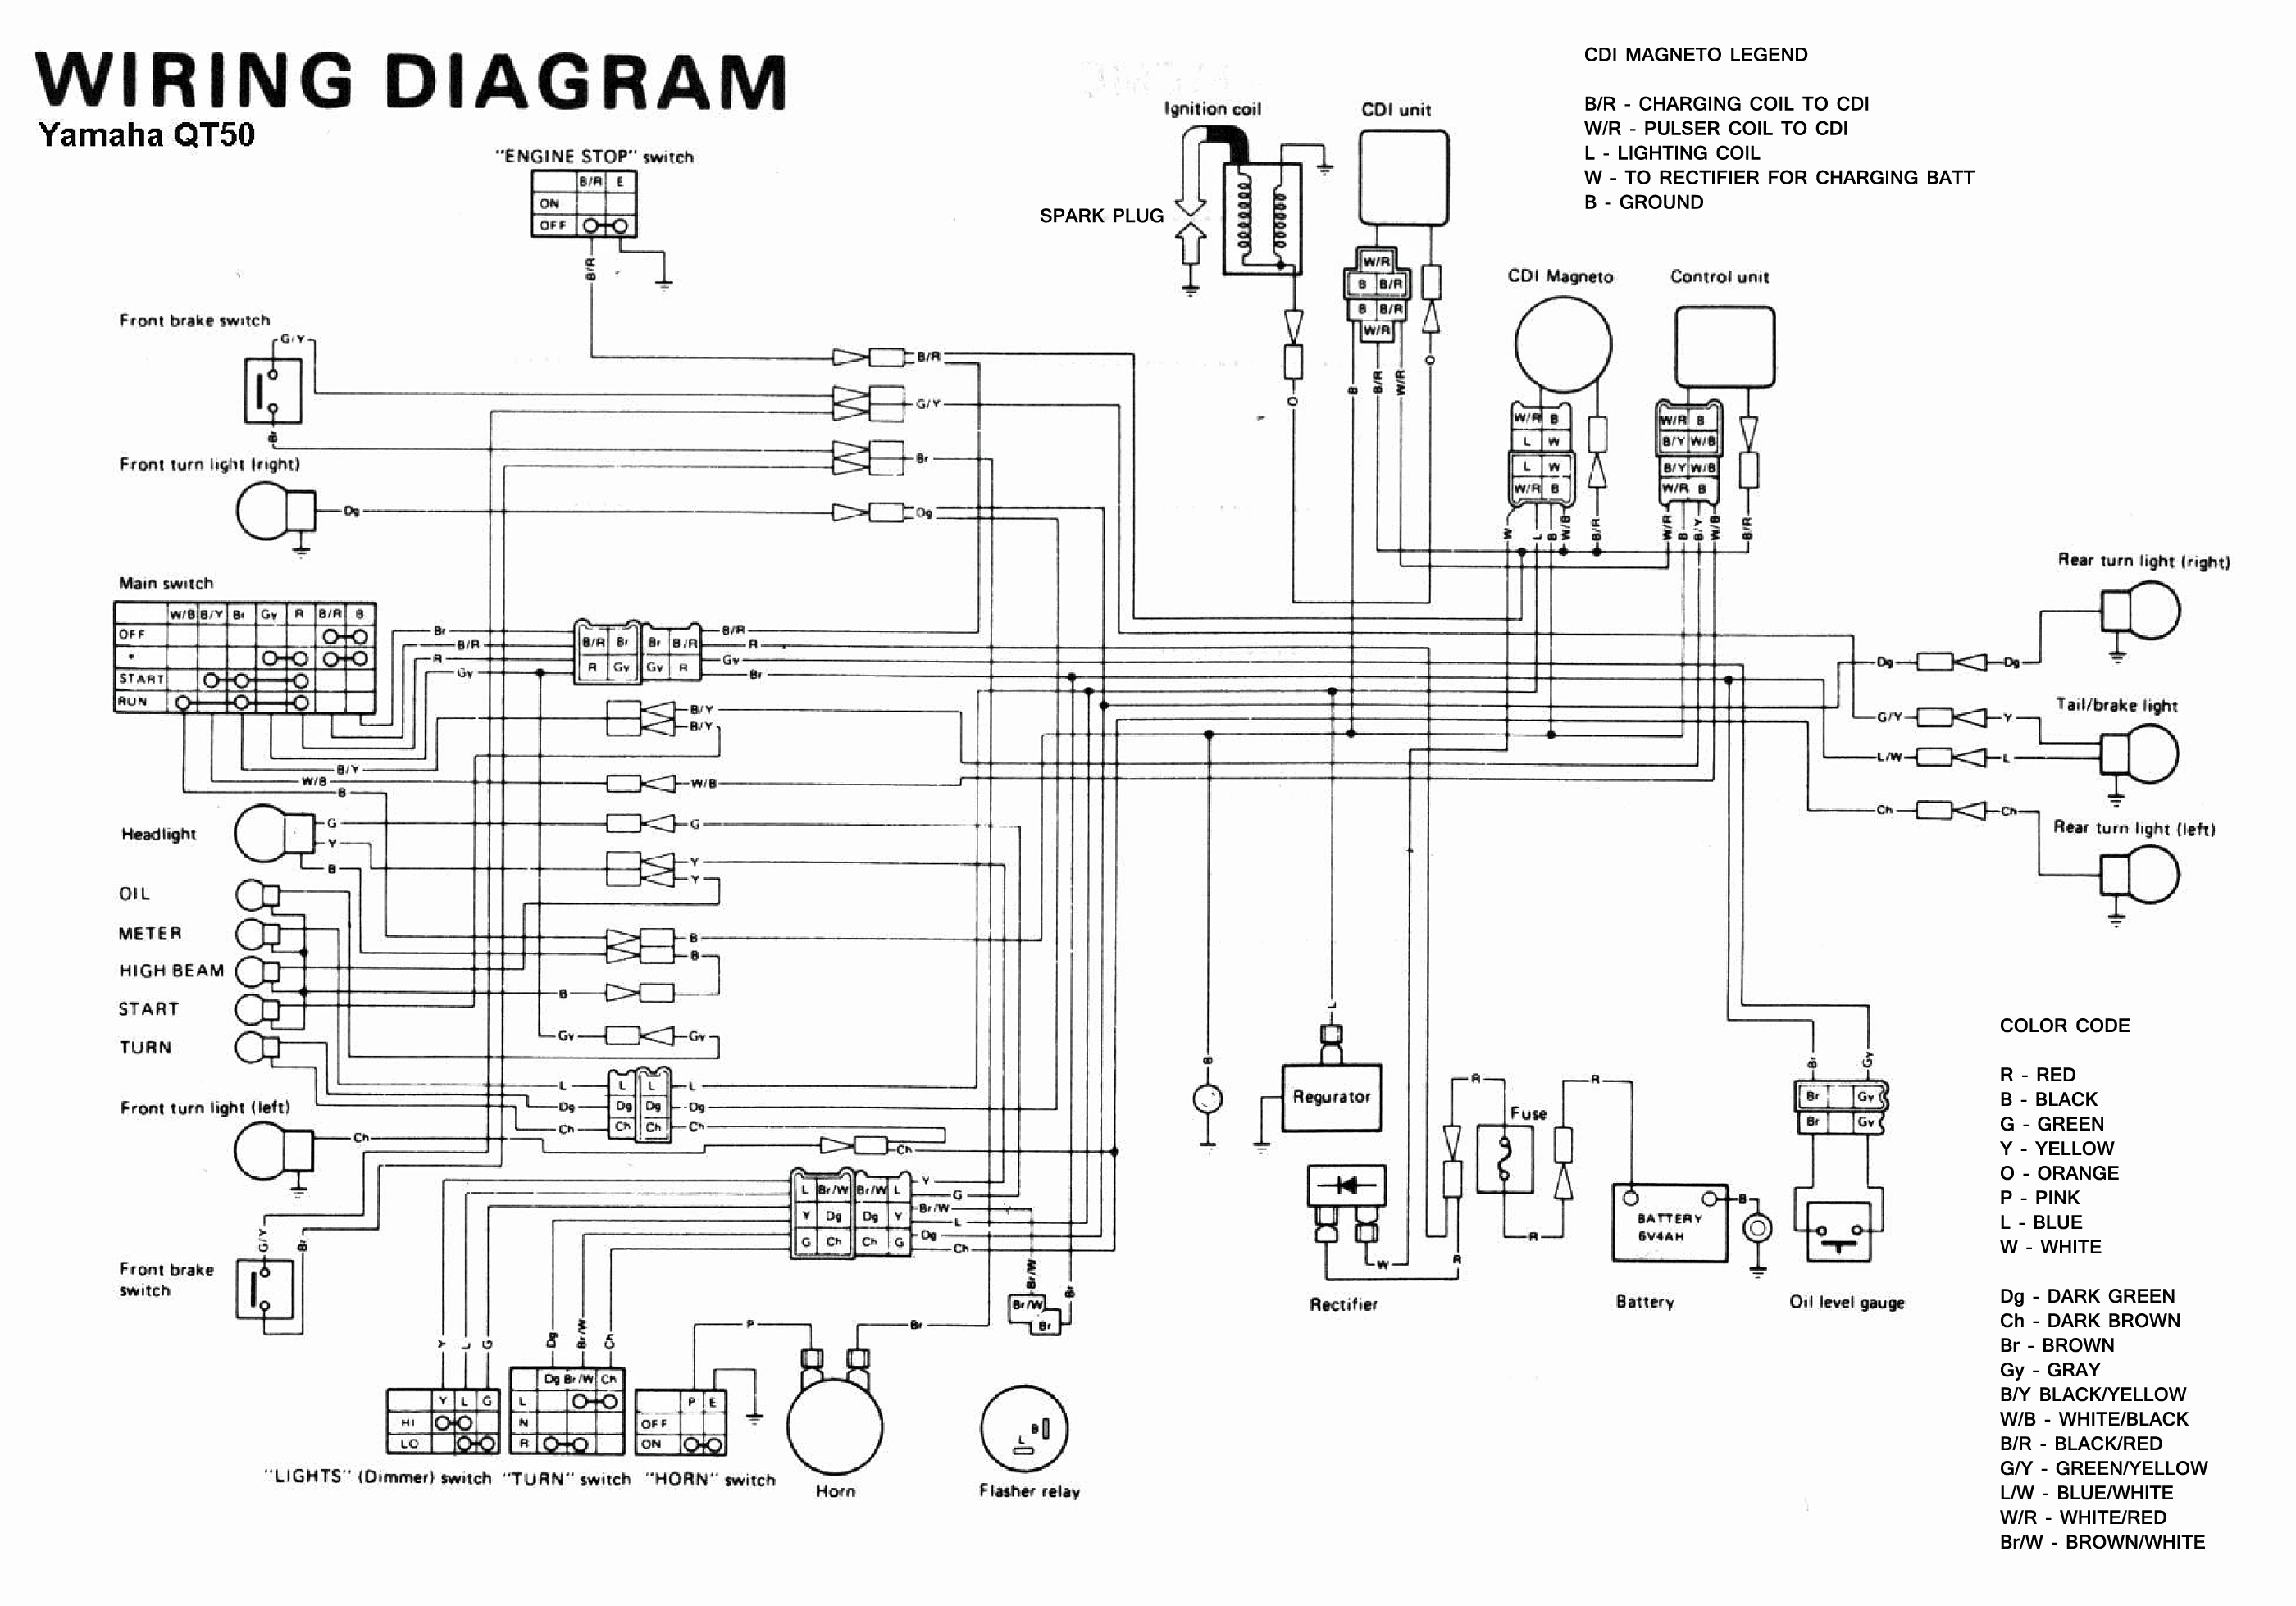 1998 Yamaha Warrior Wiring Diagram Schematic Diagrams Banshee Polaris Scrambler Atv Engine Boat